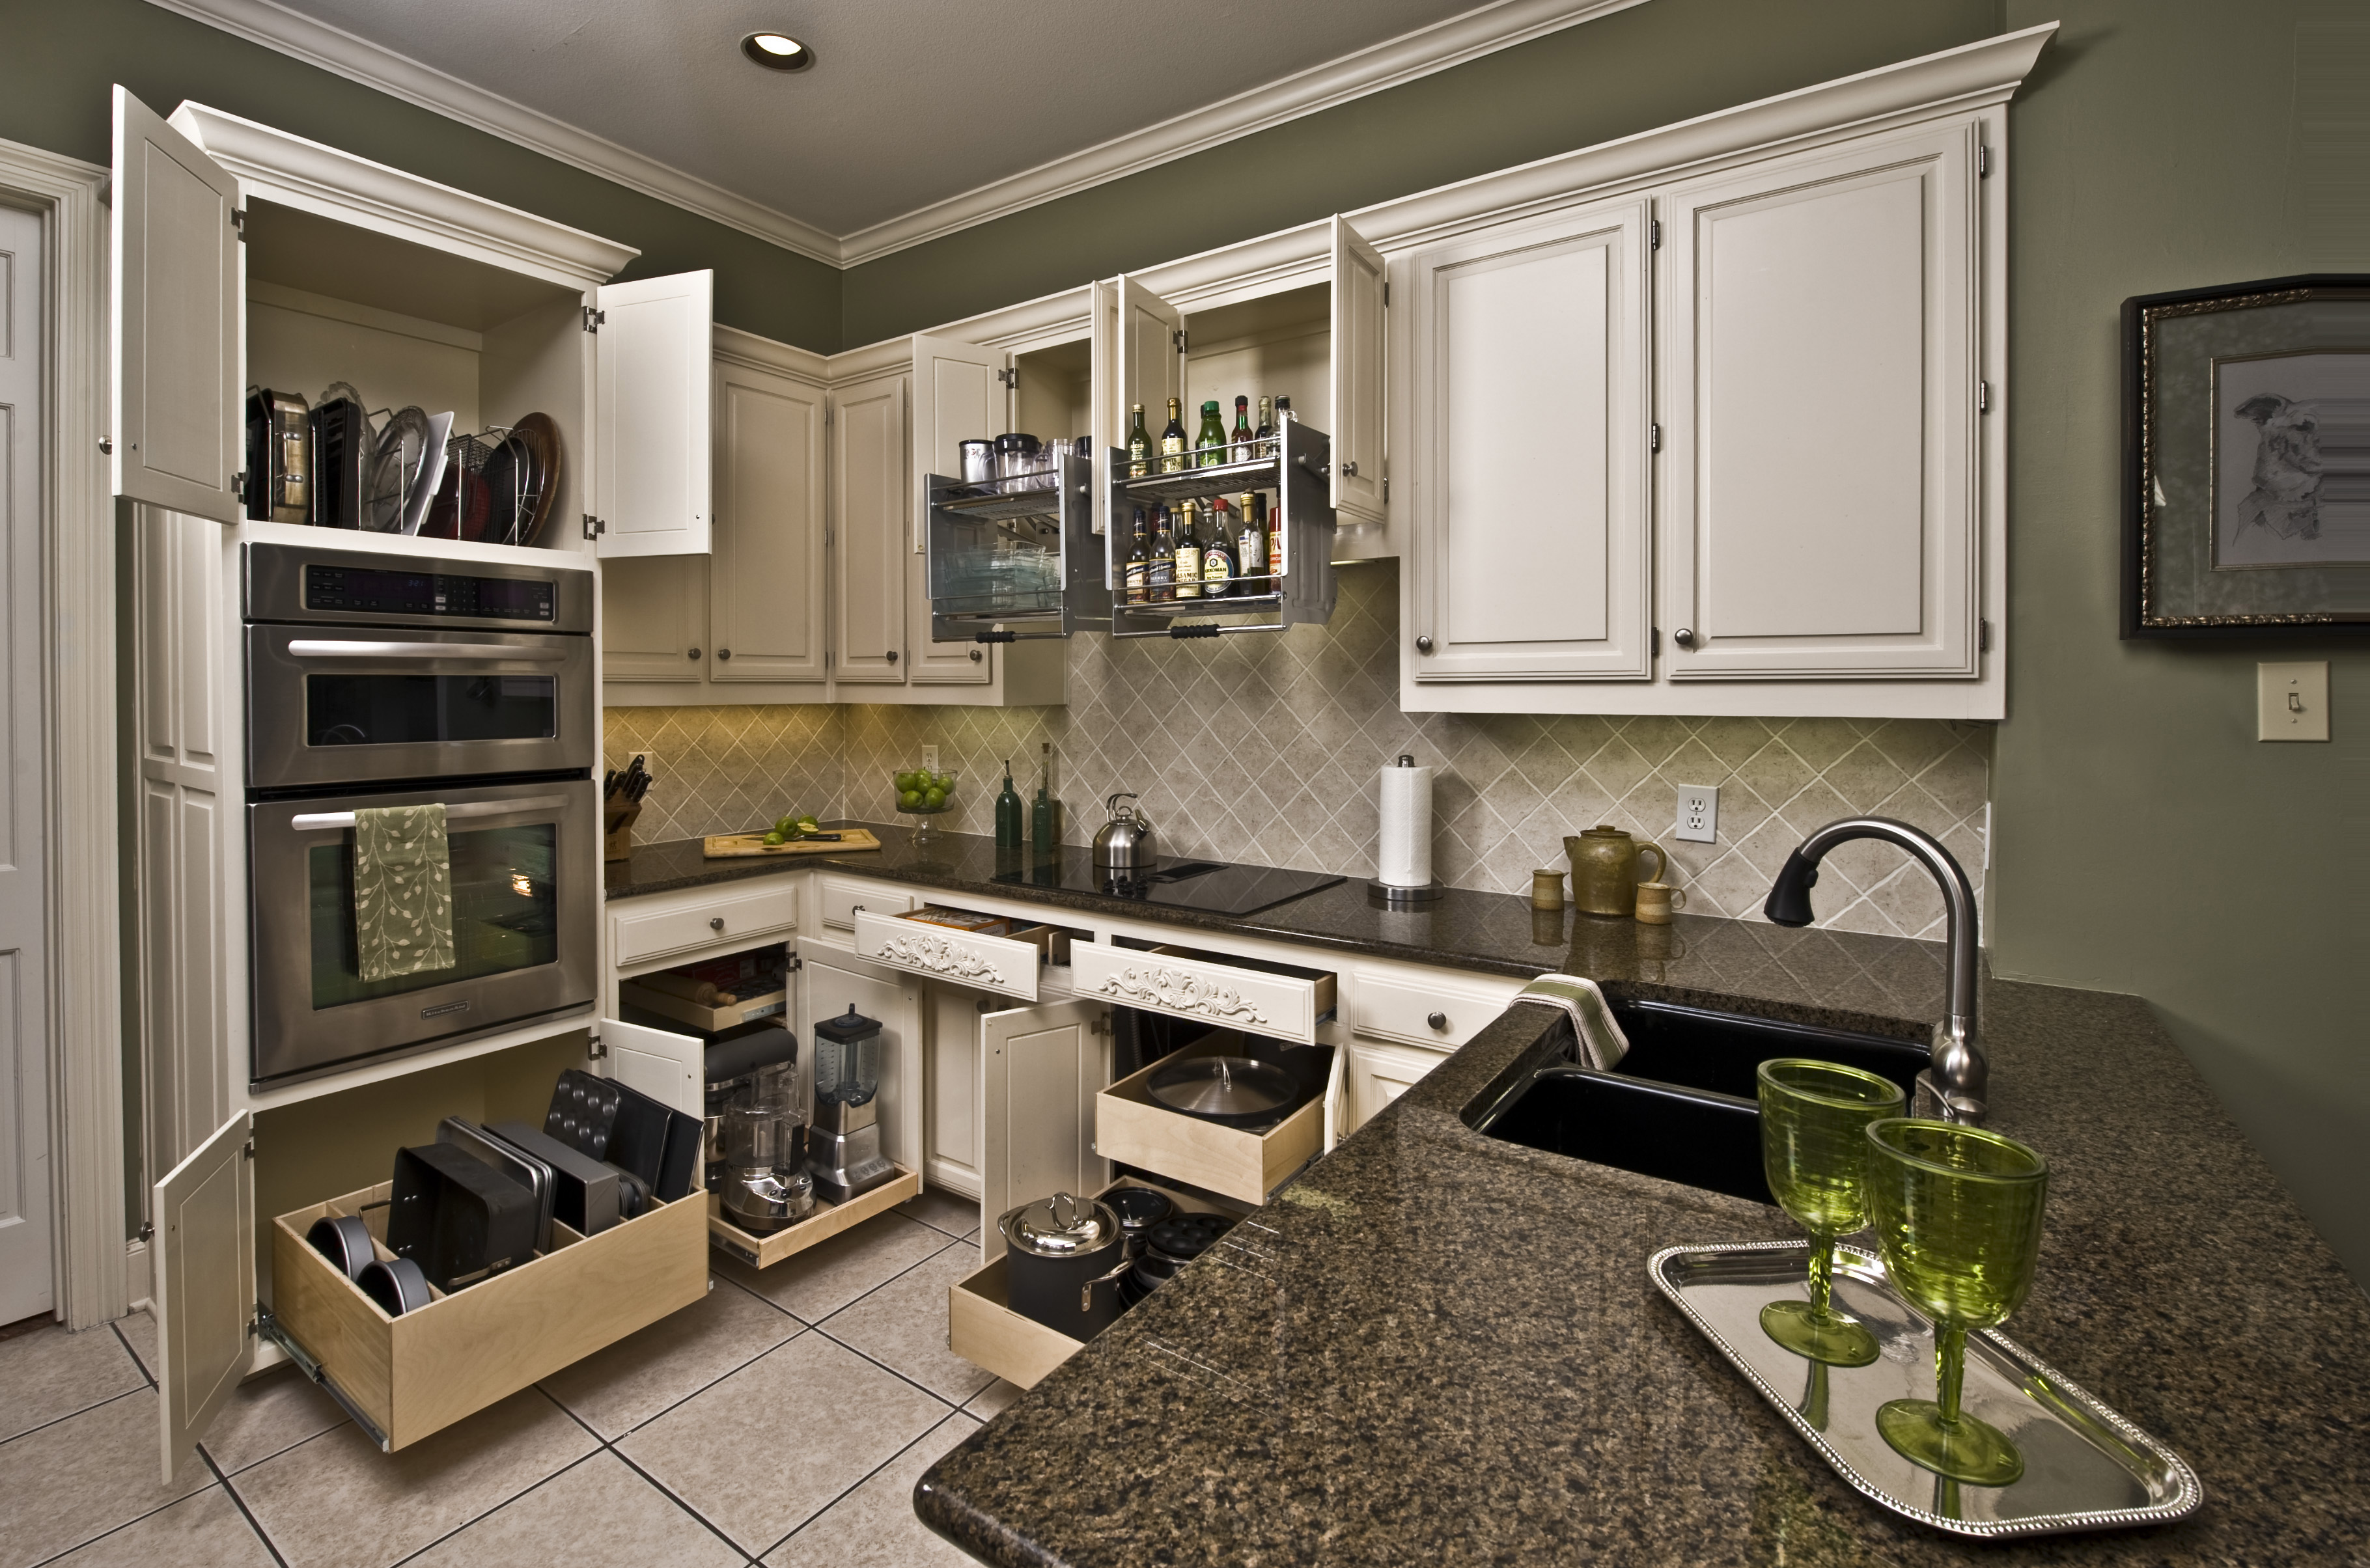 Los Angeles Pull Out Shelves Kitchen Cabinets Ramsey Interiors